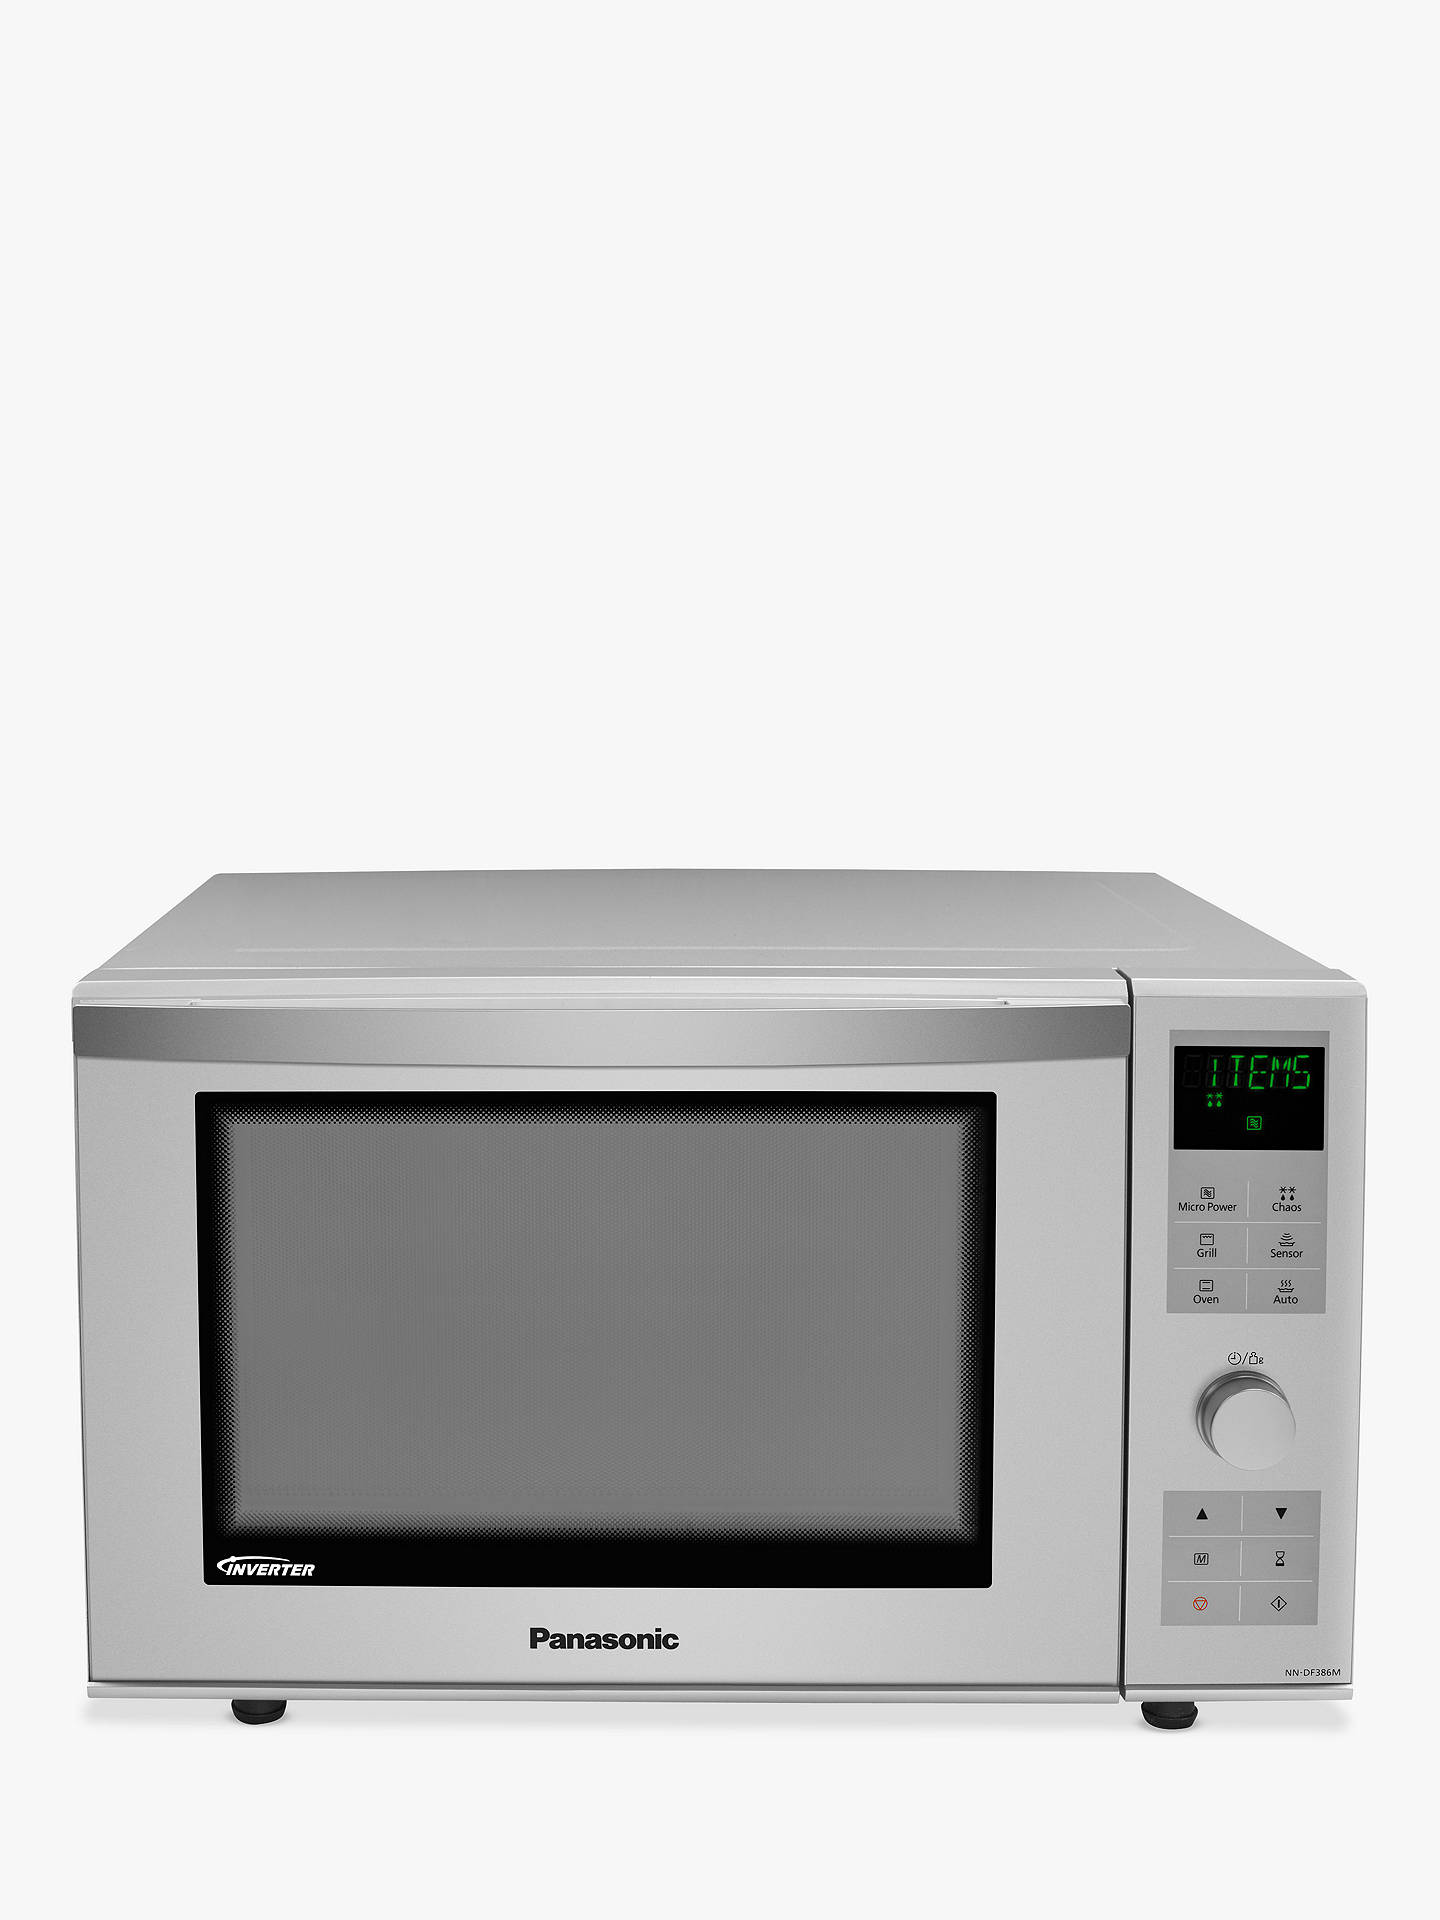 320c5e77 Buy Panasonic NN-DF386MBPQ Combination Microwave Oven, Silver Online at  johnlewis.com ...